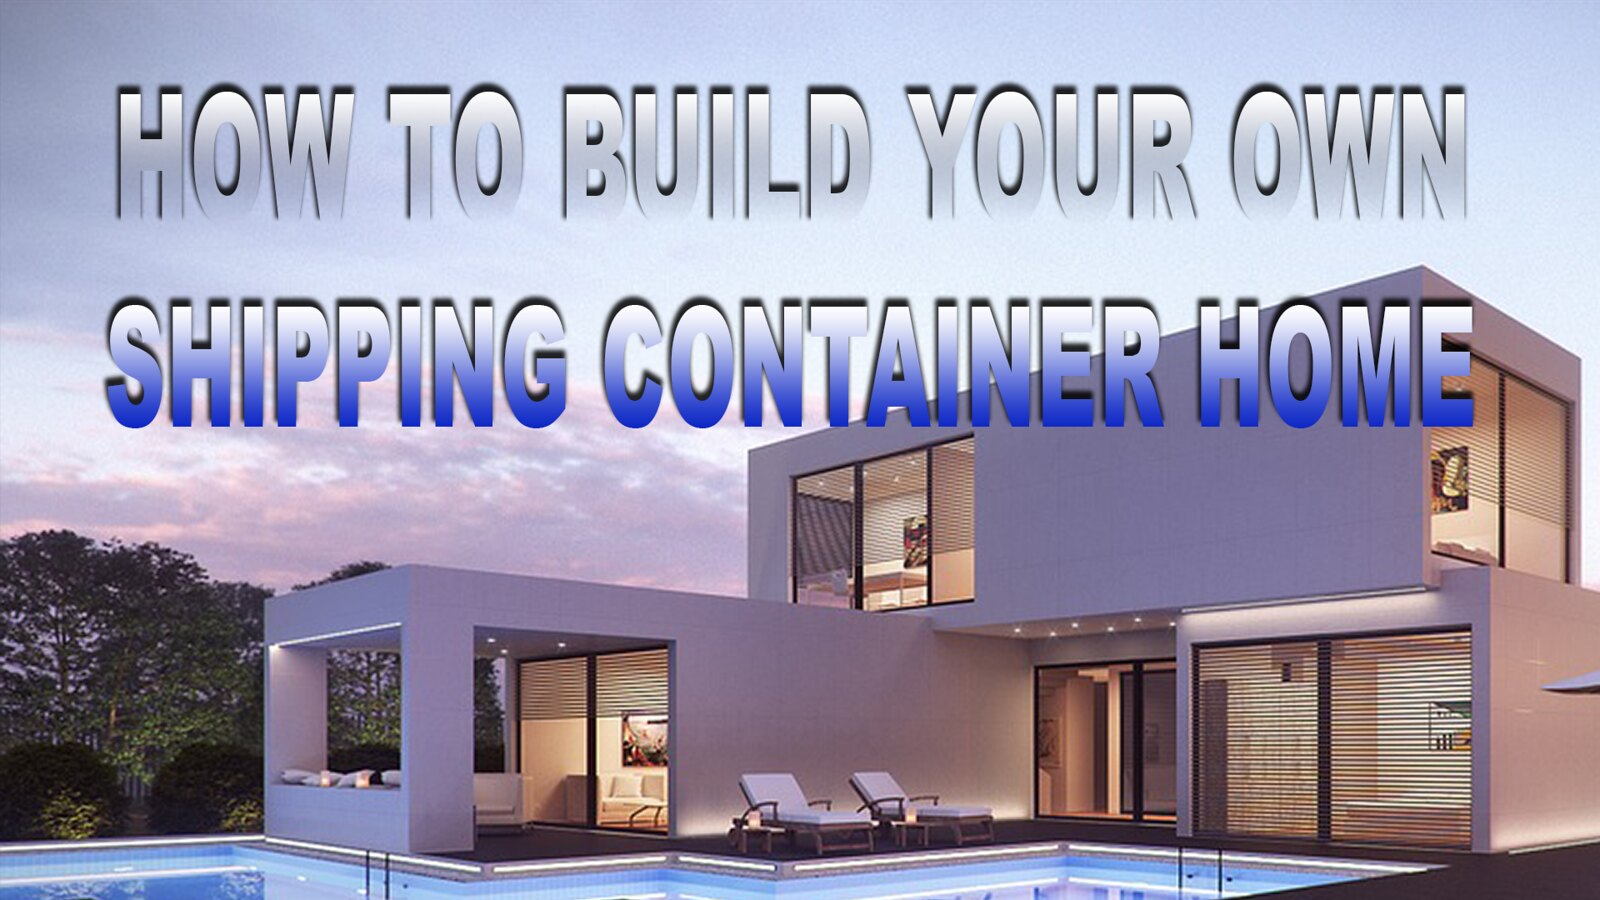 How To Build Your Own Shipping Container Home.jpg